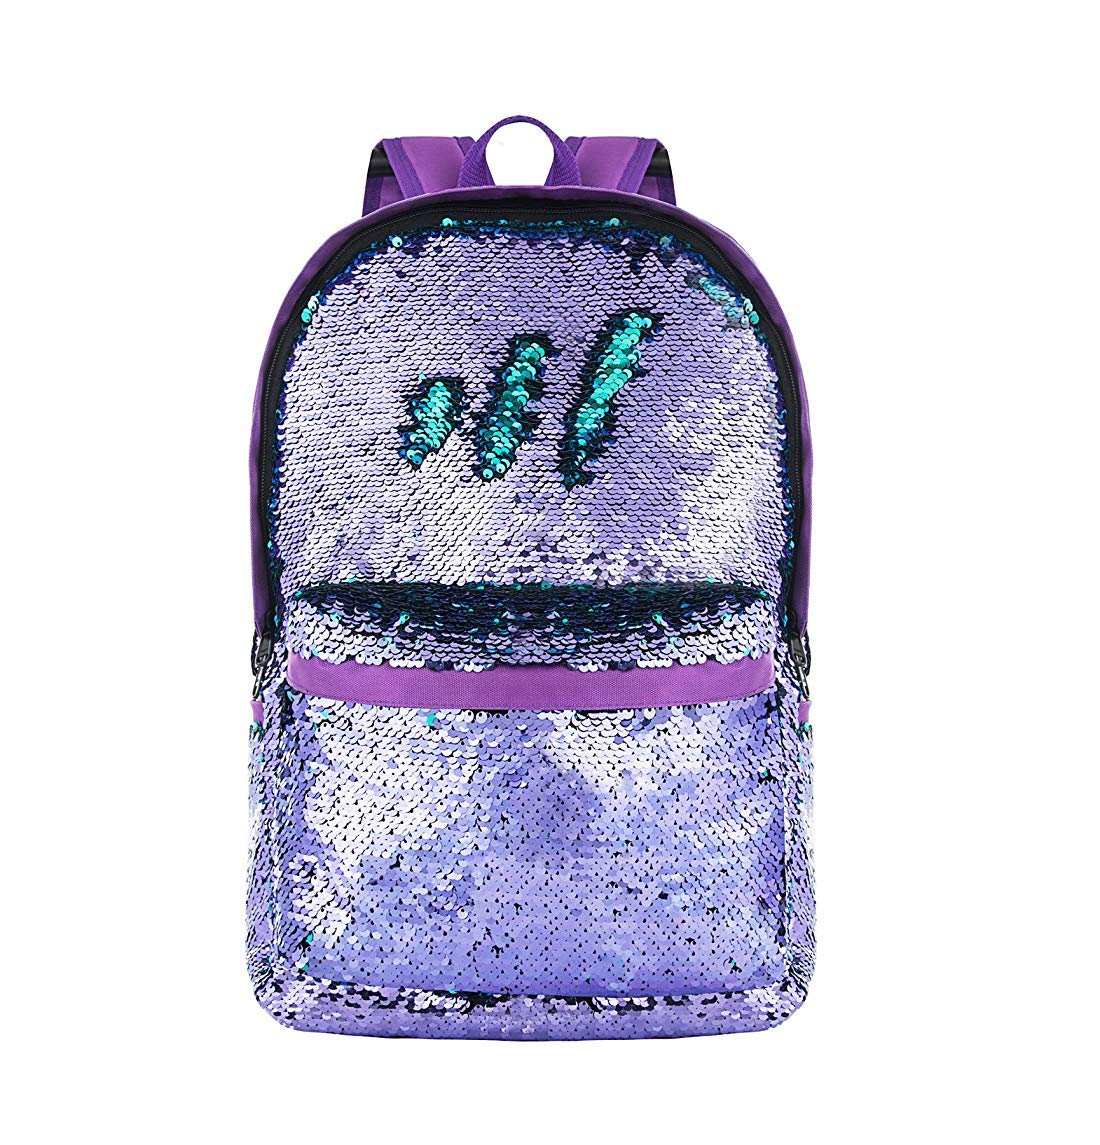 Amazon.com | MQiong Reversible Sequins School Backpack Bag for Girls Boys Fashion Lightweight Travel Backpacks Purple/Teal | Kids Backpacks